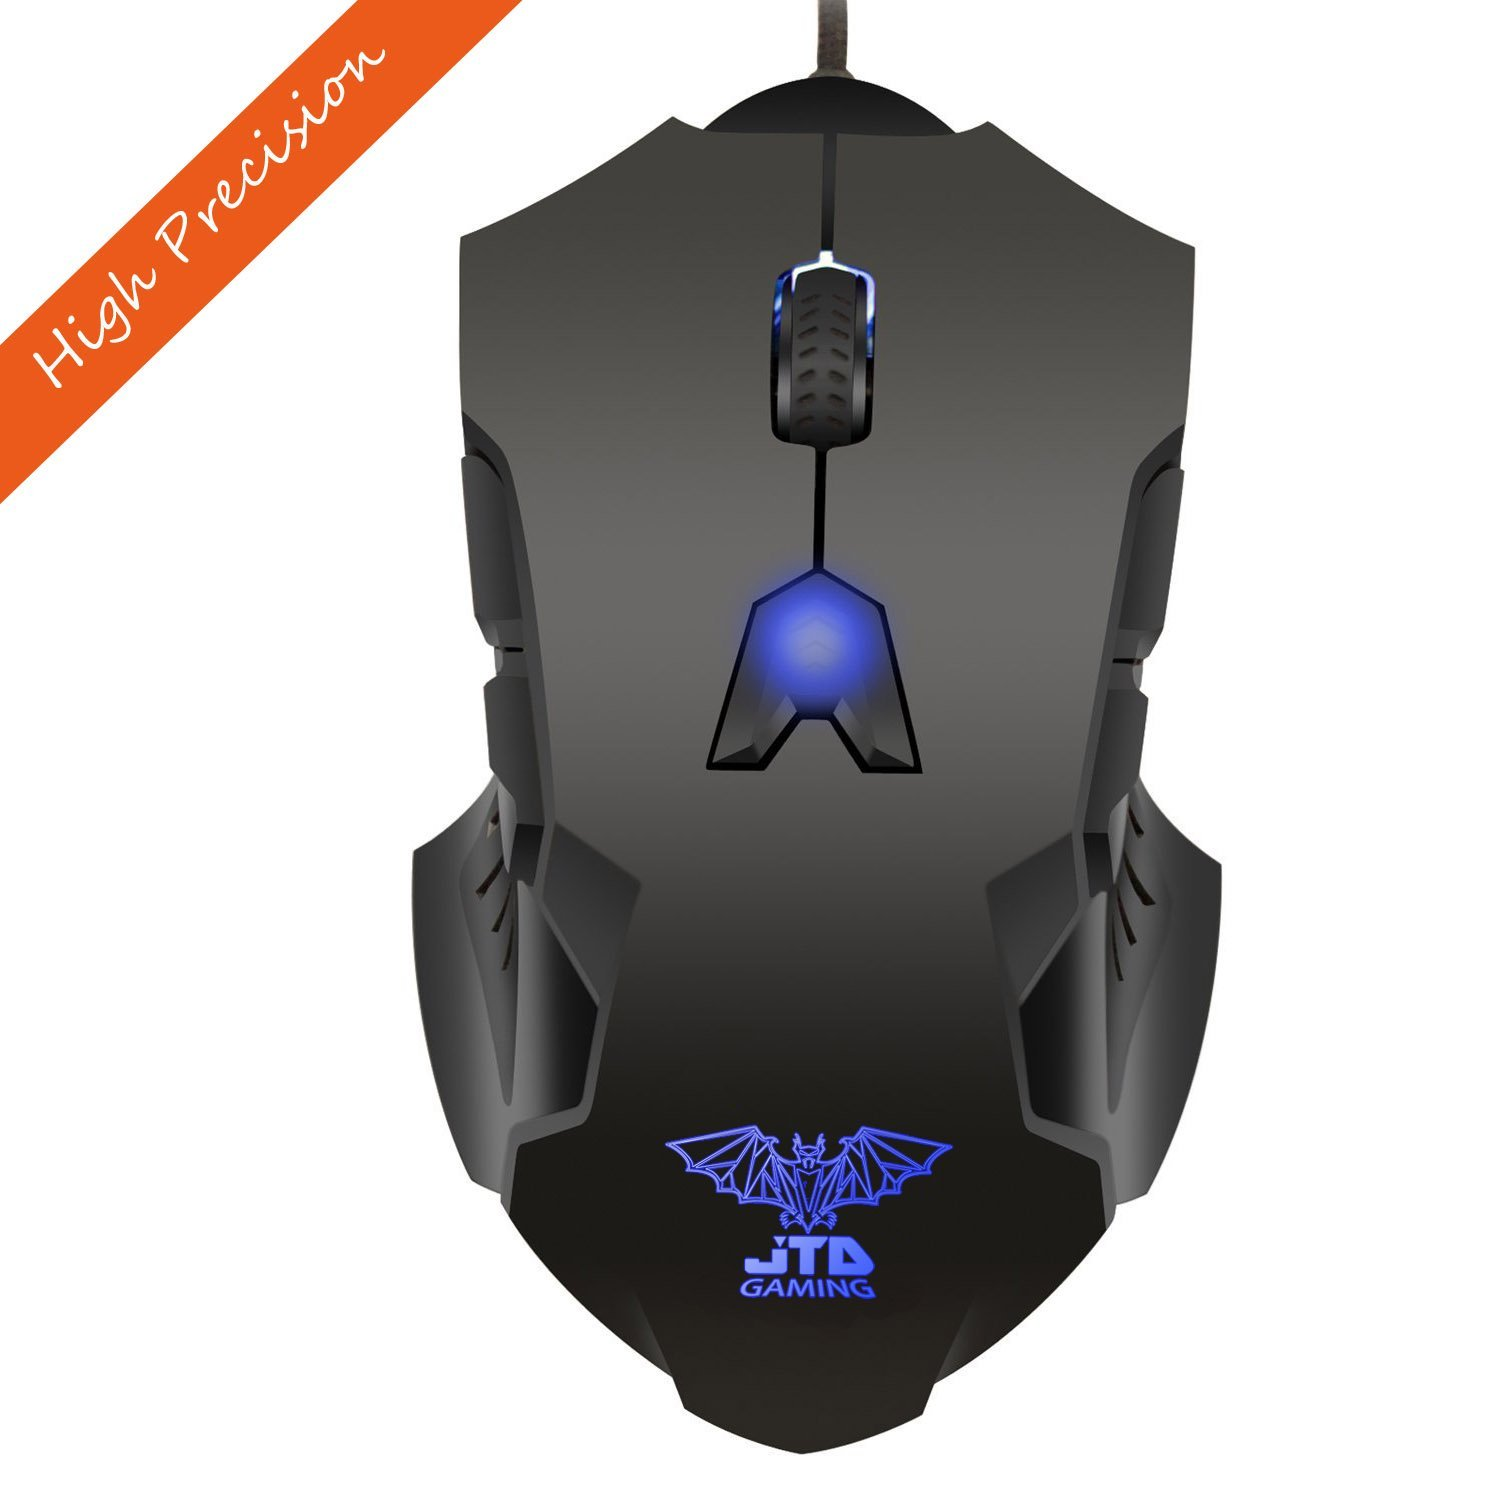 JTD  M999 Professional Gaming Bat High Precision 200 to 8200 DPI Adjustable DPI LED Wired USB Laser Gaming Mouse for Pc, 8 Programmable Buttons, 5 User Profiles, Omron Micro Switches, Avago Sensor